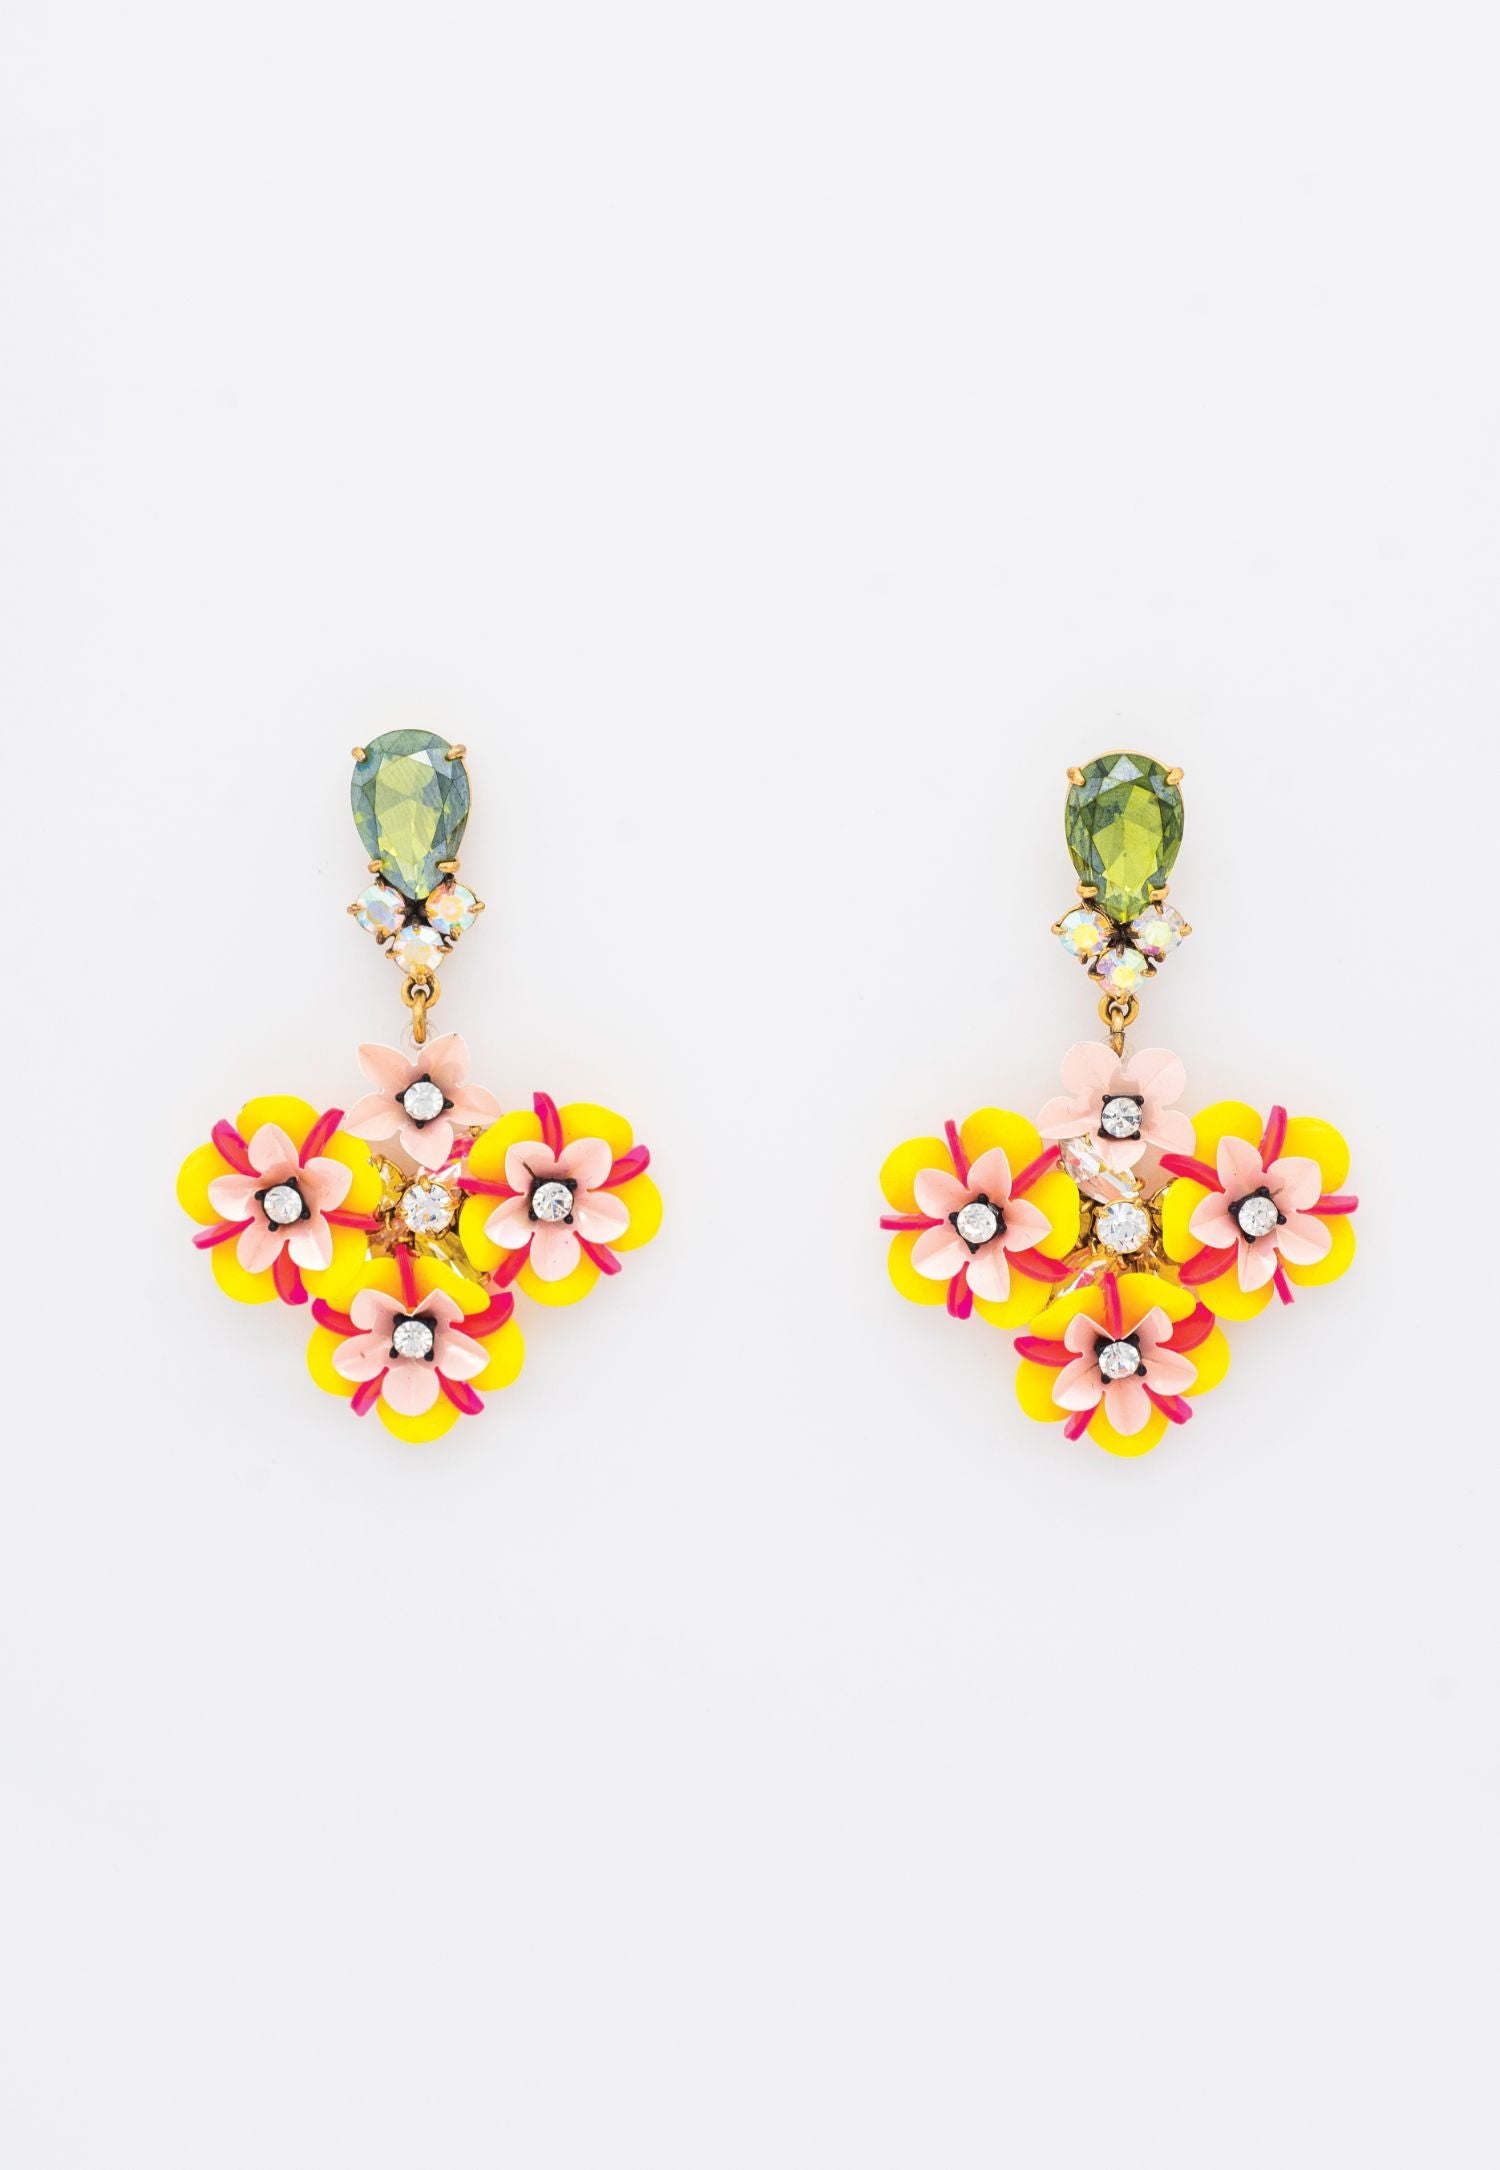 YELLOW FLORAL AND GREEN RHINESTONE EARRINGS